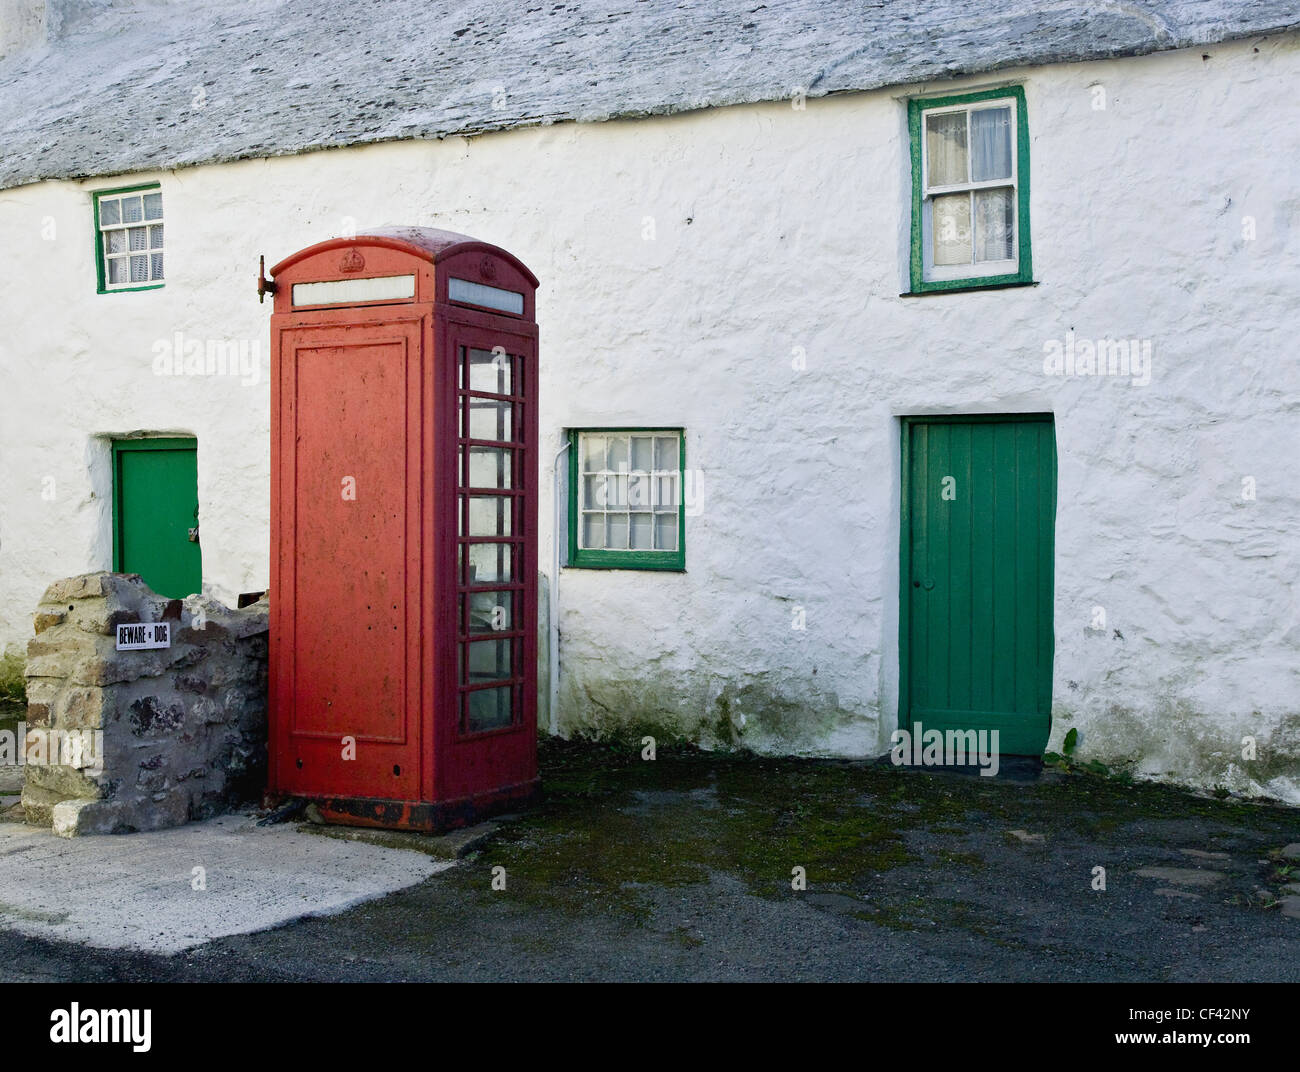 A public telephone box outside a remote farmhouse, previously a sub post office in Maenaddwyn. - Stock Image